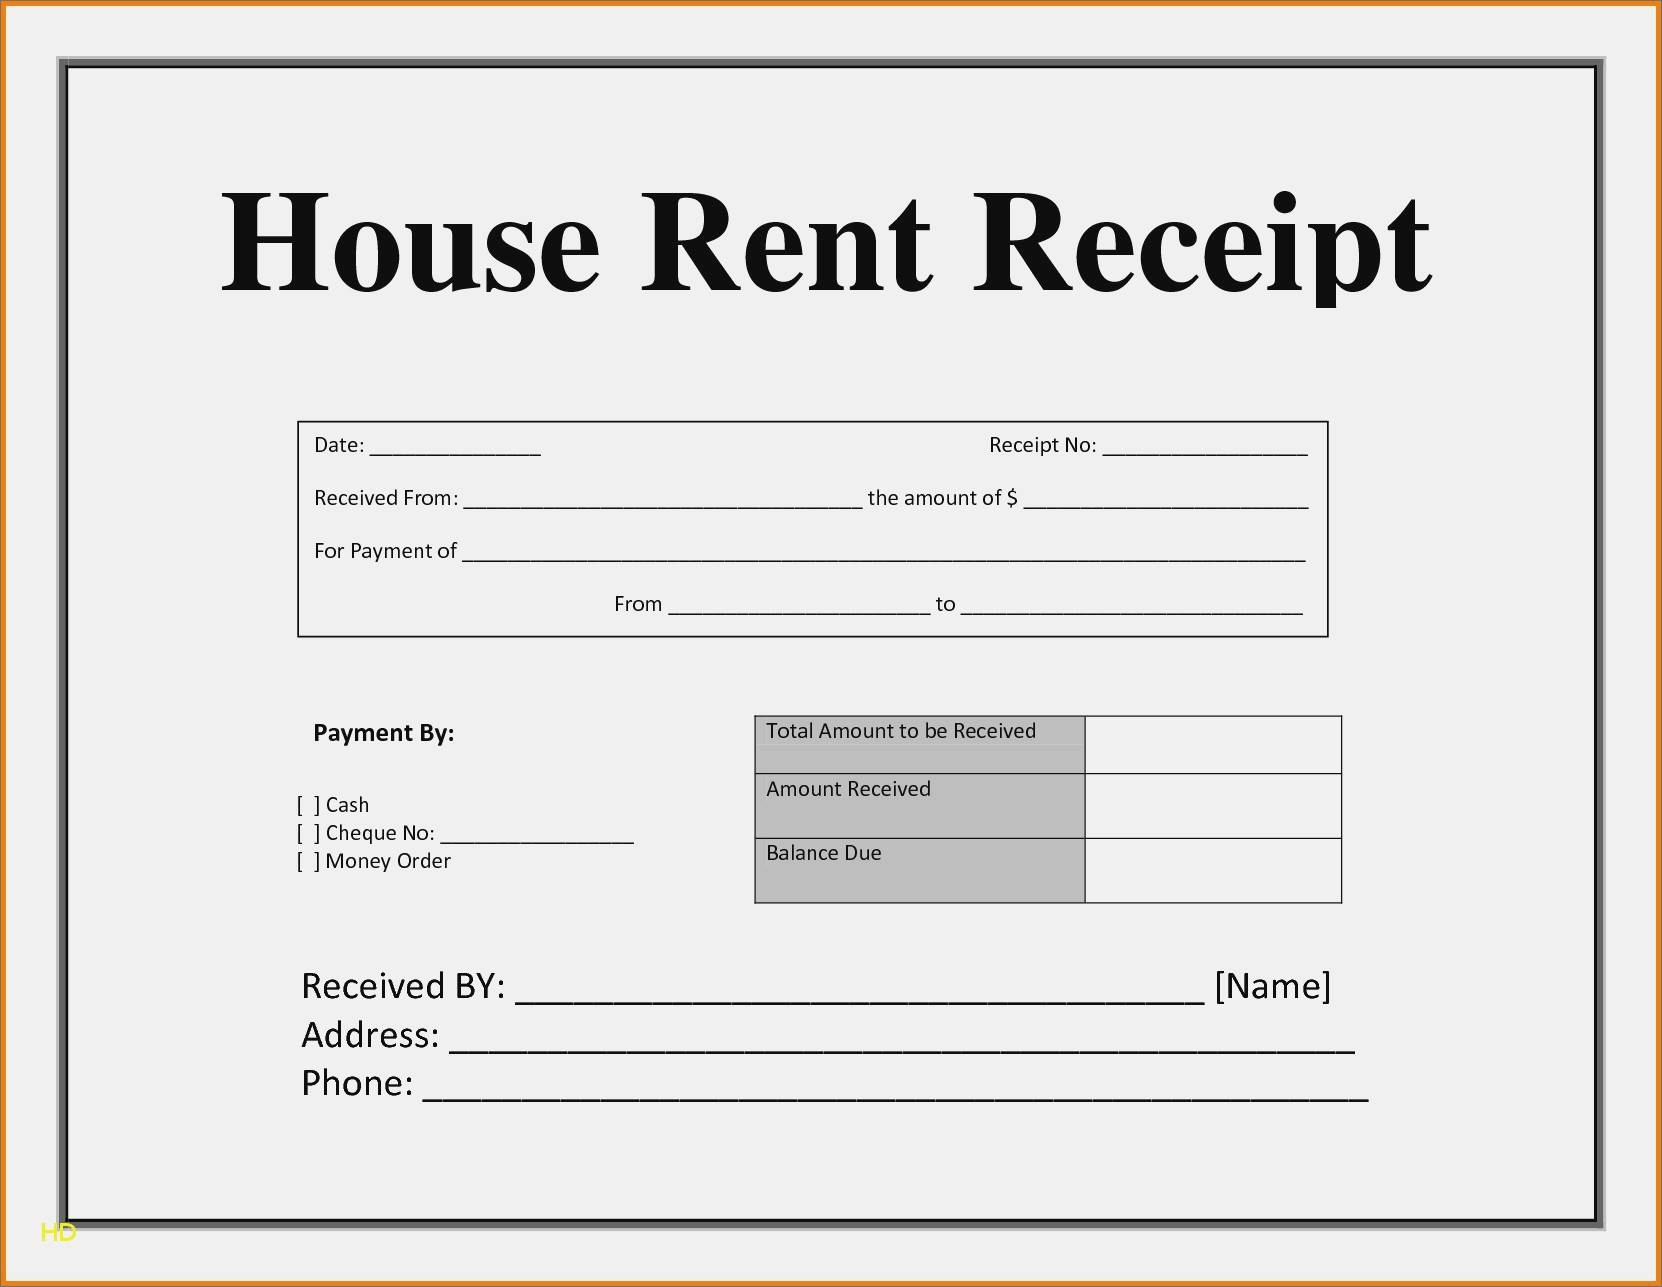 House Rent Invoice Template Free